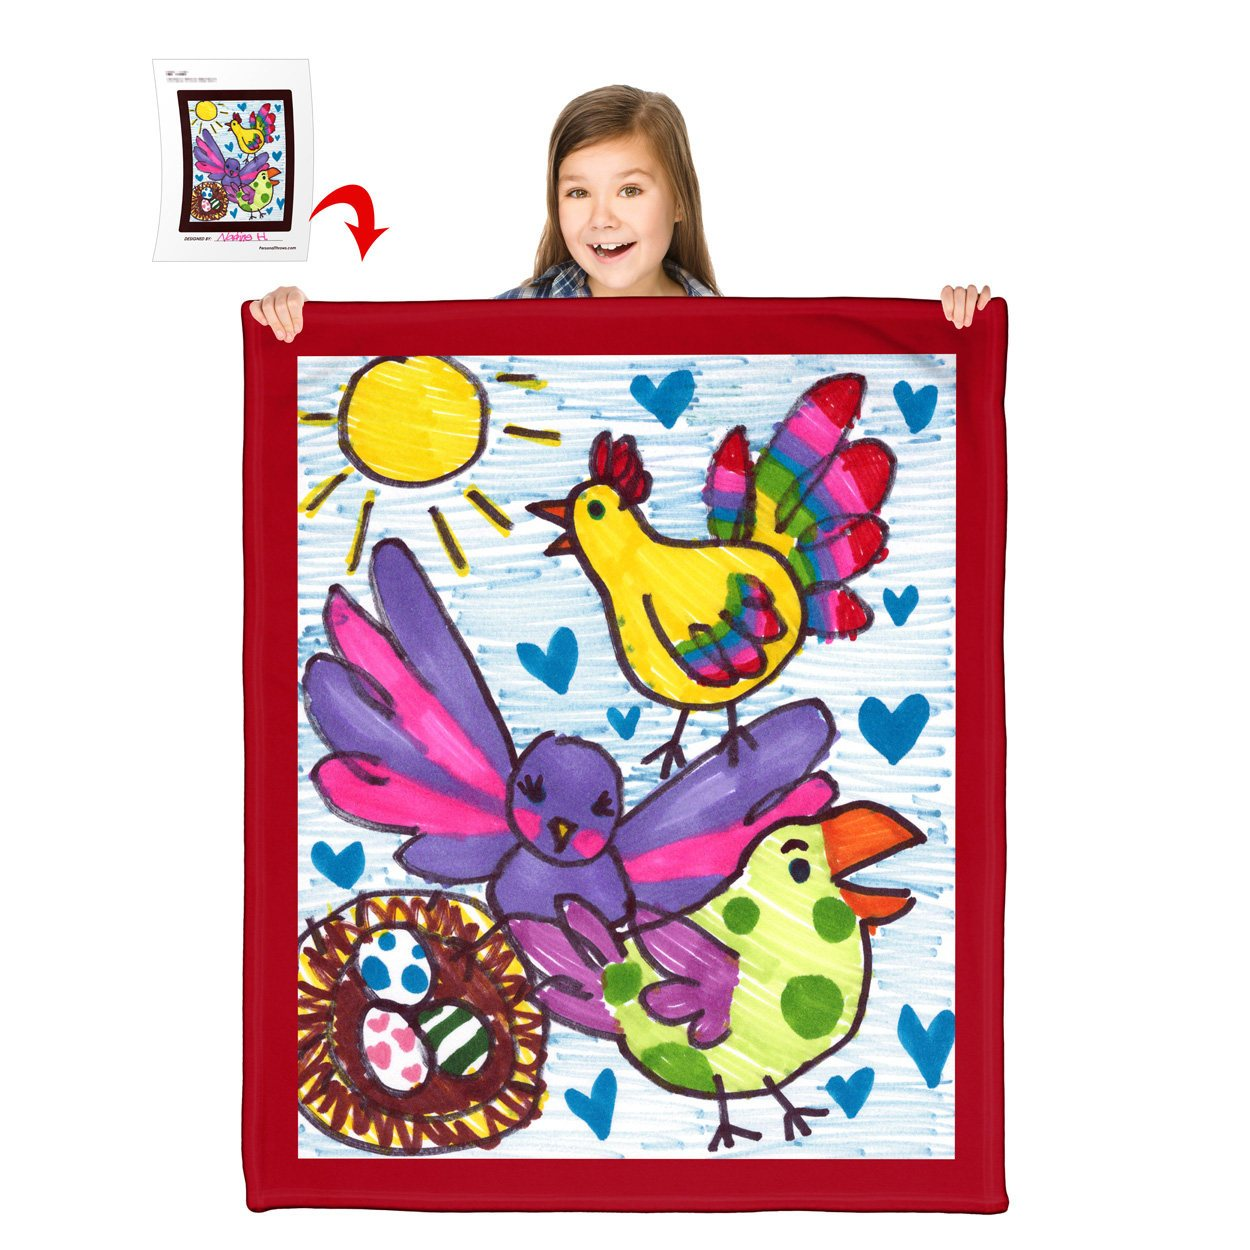 Turn Your Child's Drawing into a 50″ x 60″ Polar Fleece Blanket